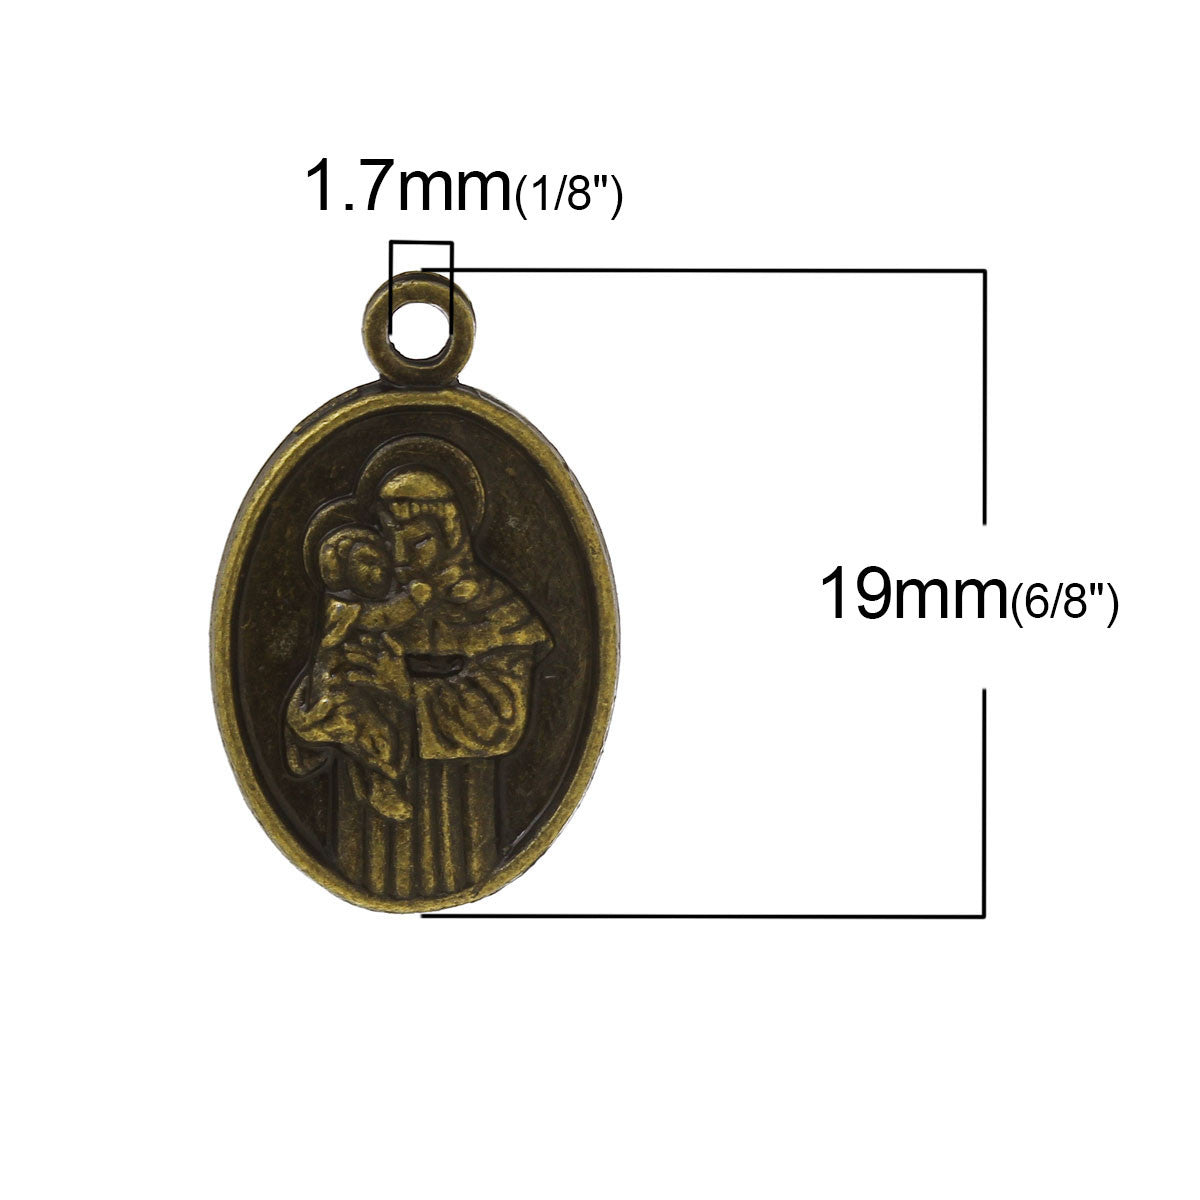 BCP10 - Breloques Médailles Religieux / Religious Medal Charms - No Mercy Making